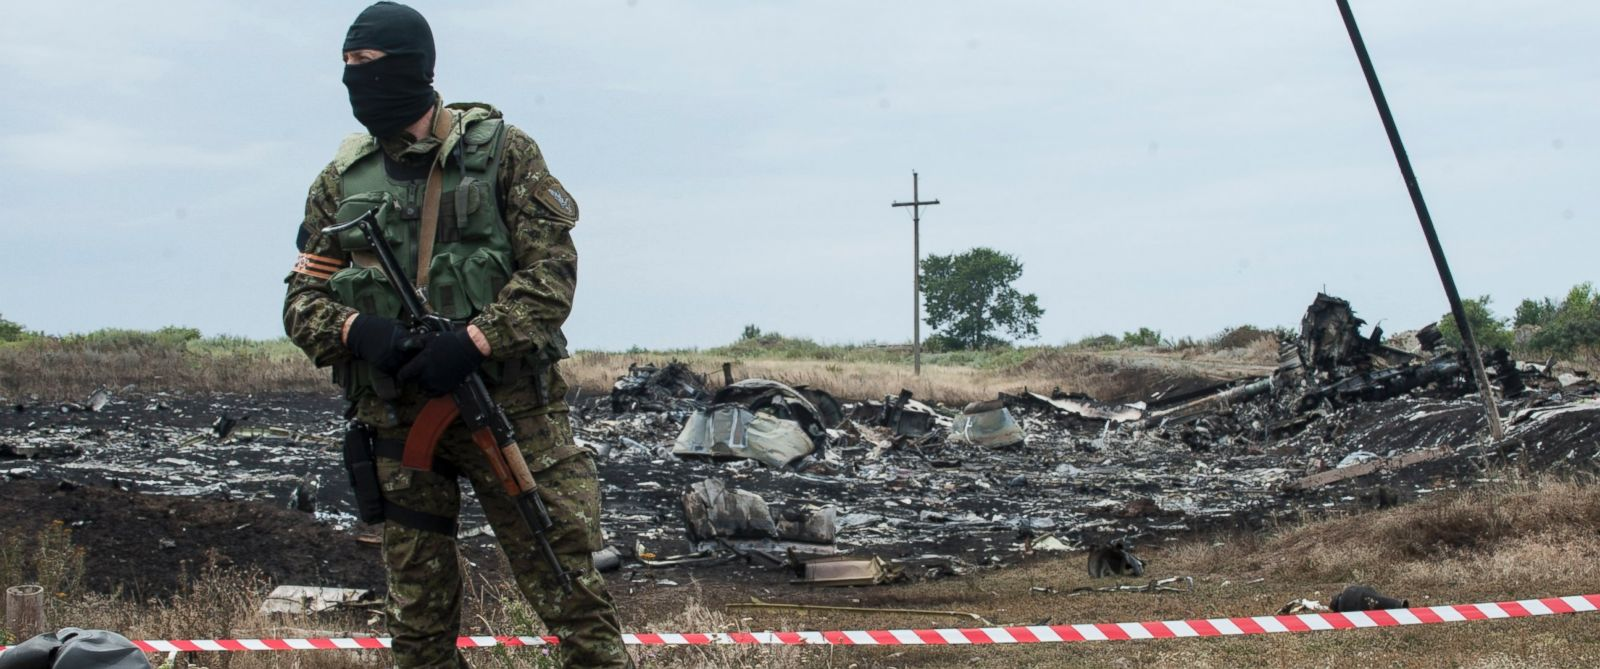 PHOTO: A pro-Russian fighter guards the crash site of a Malaysia Airlines jet near the village of Hrabove, eastern Ukraine, Saturday, July 19, 2014.